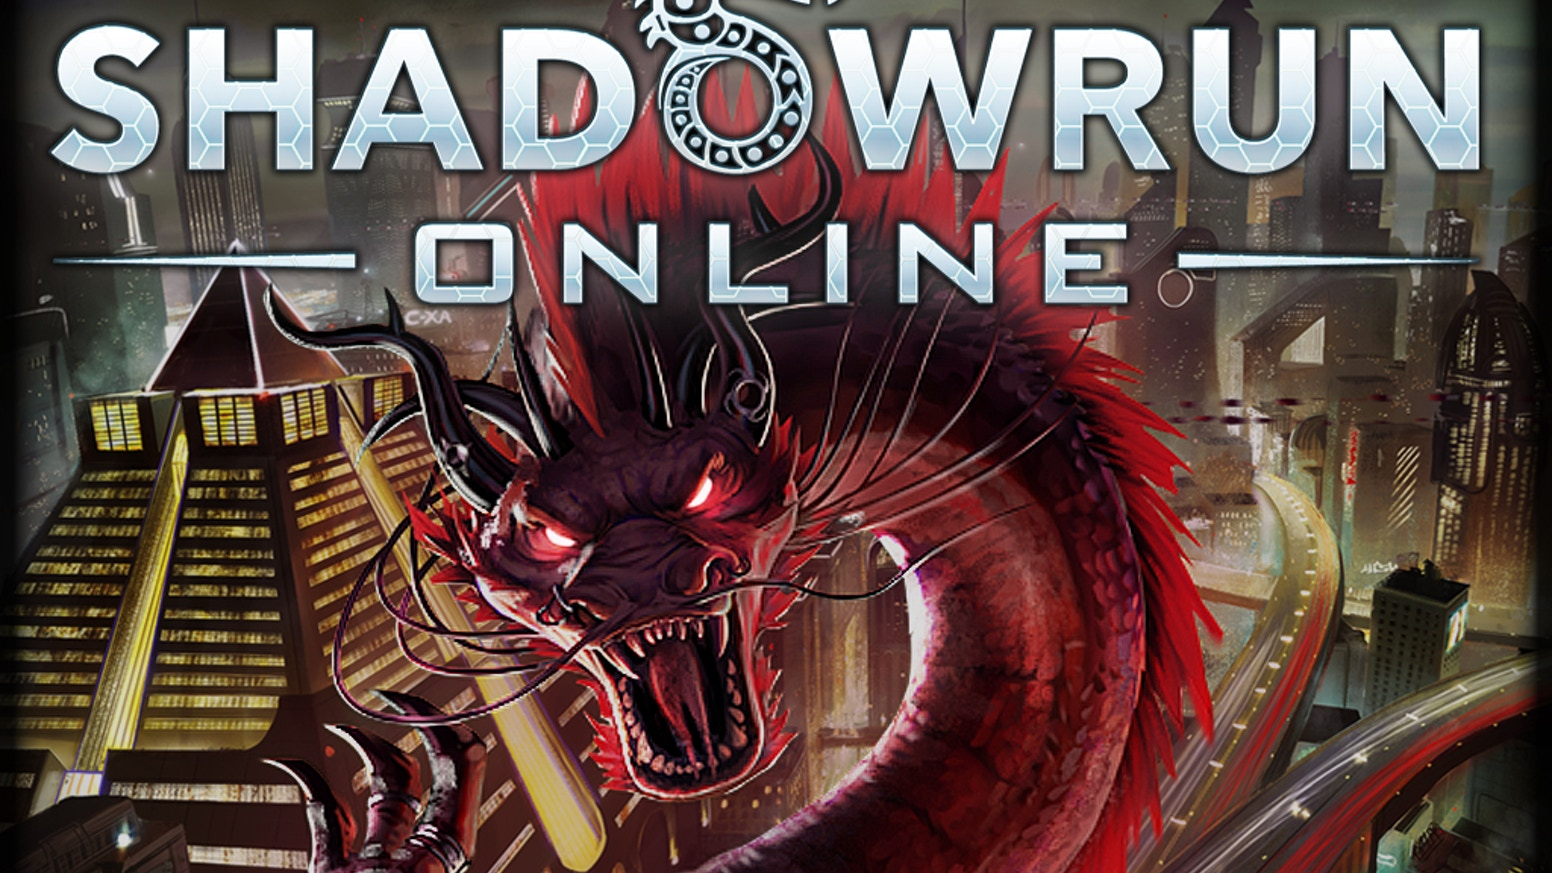 Experience Shadowrun with your friends and plenty of enemies in an action strategy game and determine the future of the 6th world!